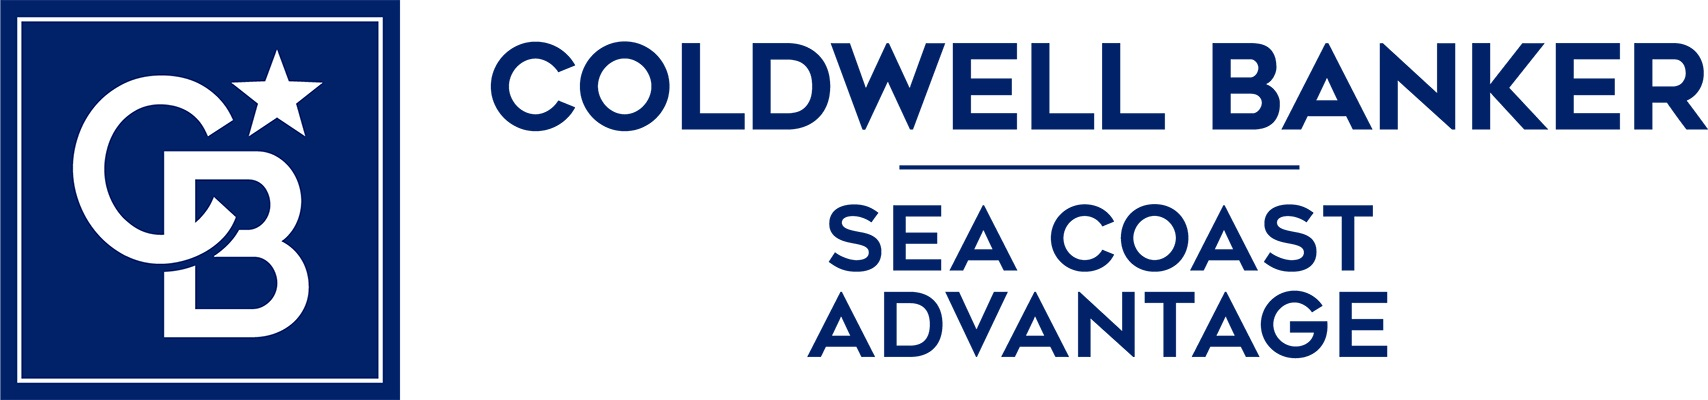 Linda Waters - Coldwell Banker Sea Coast Advantage Realty